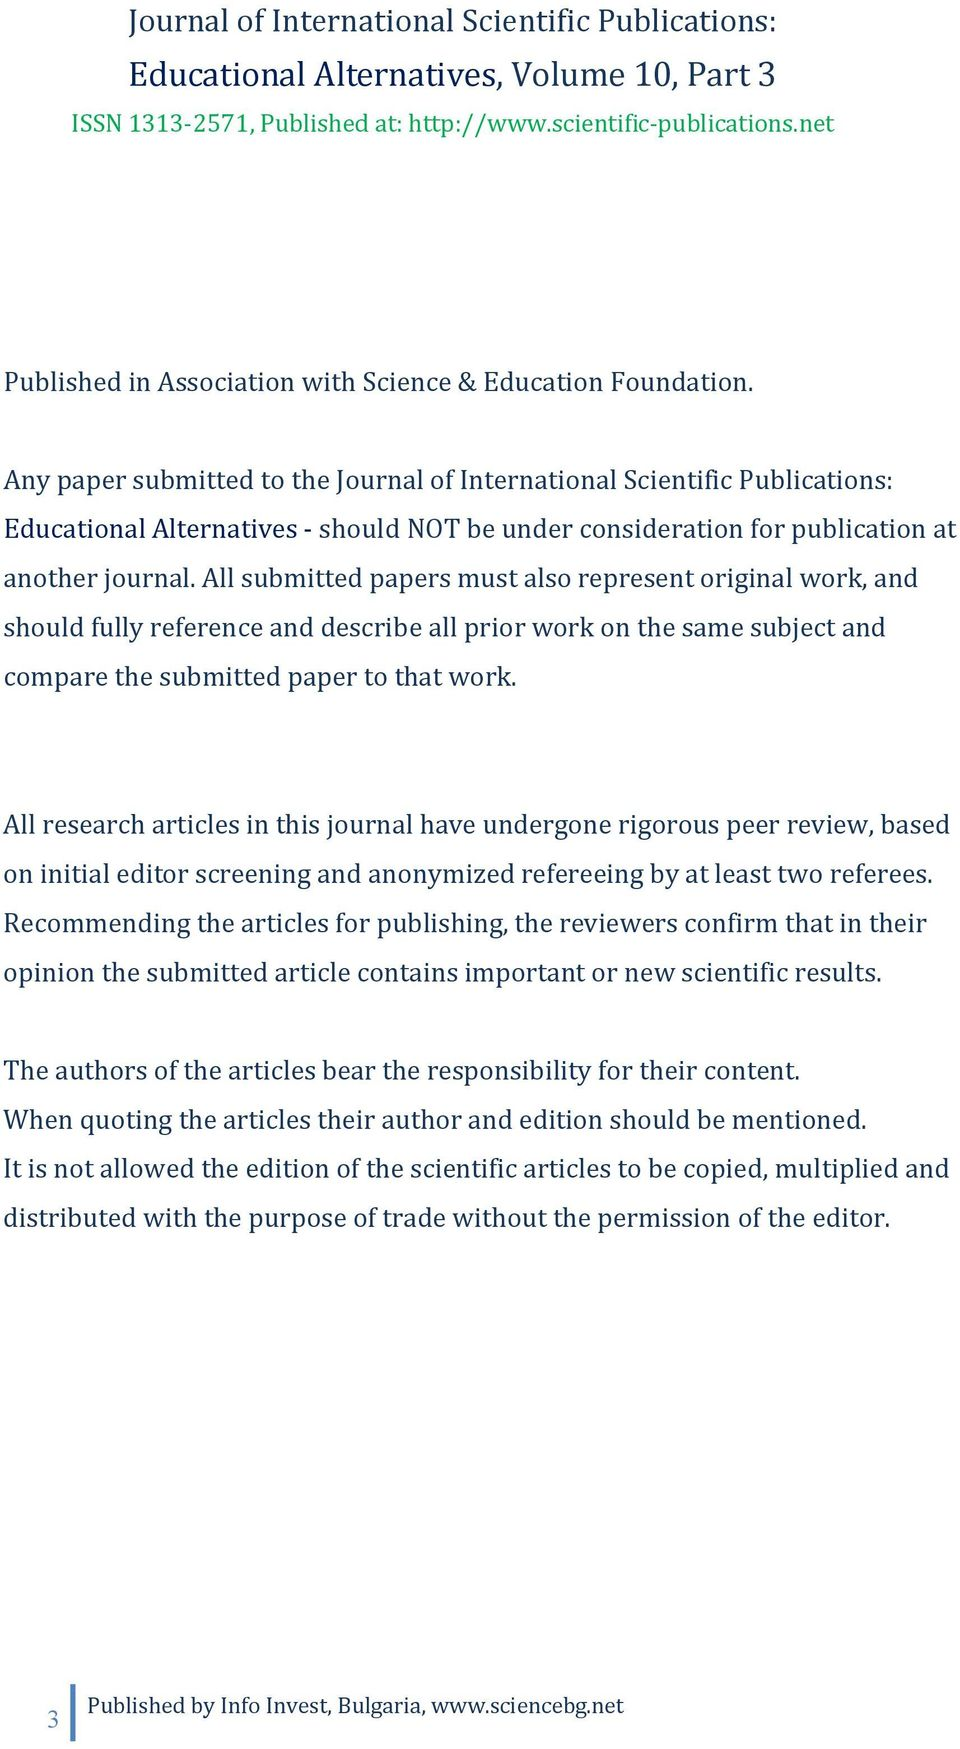 All submitted papers must also represent original work, and should fully reference and describe all prior work on the same subject and compare the submitted paper to that work.